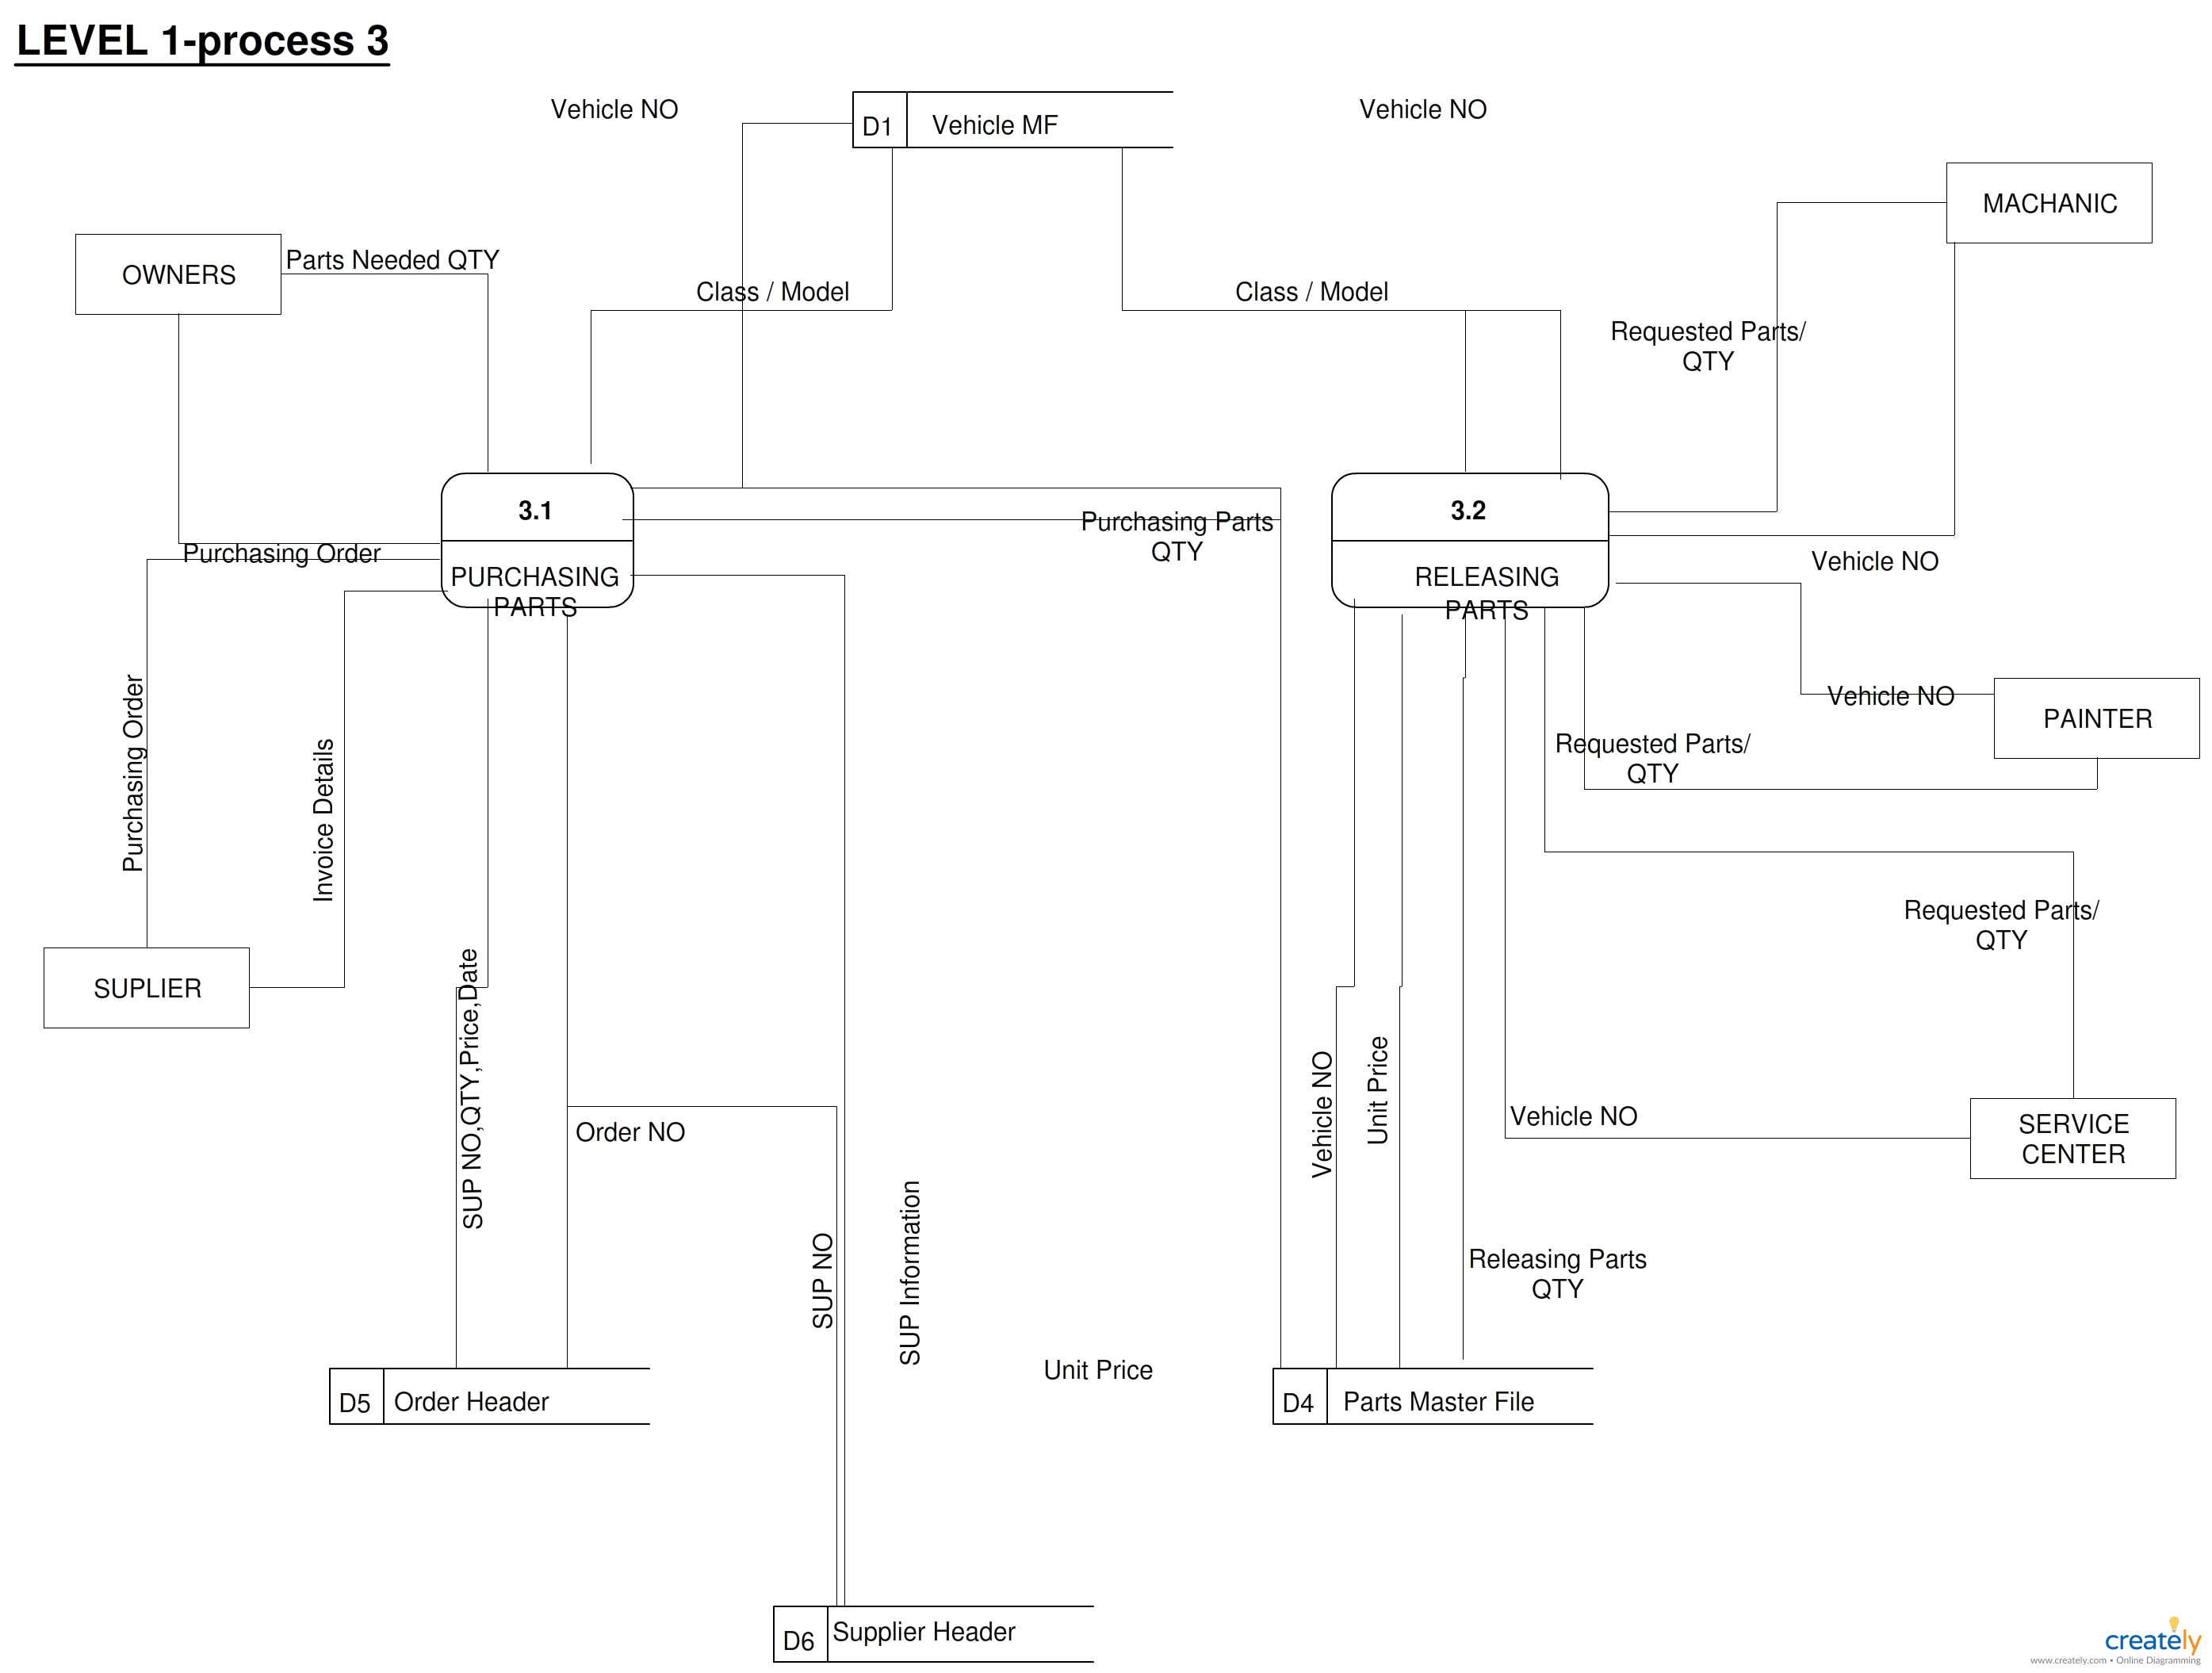 medium resolution of data flow diagram dfd for vehicle service center or carwash click on the image to use this as a template and download